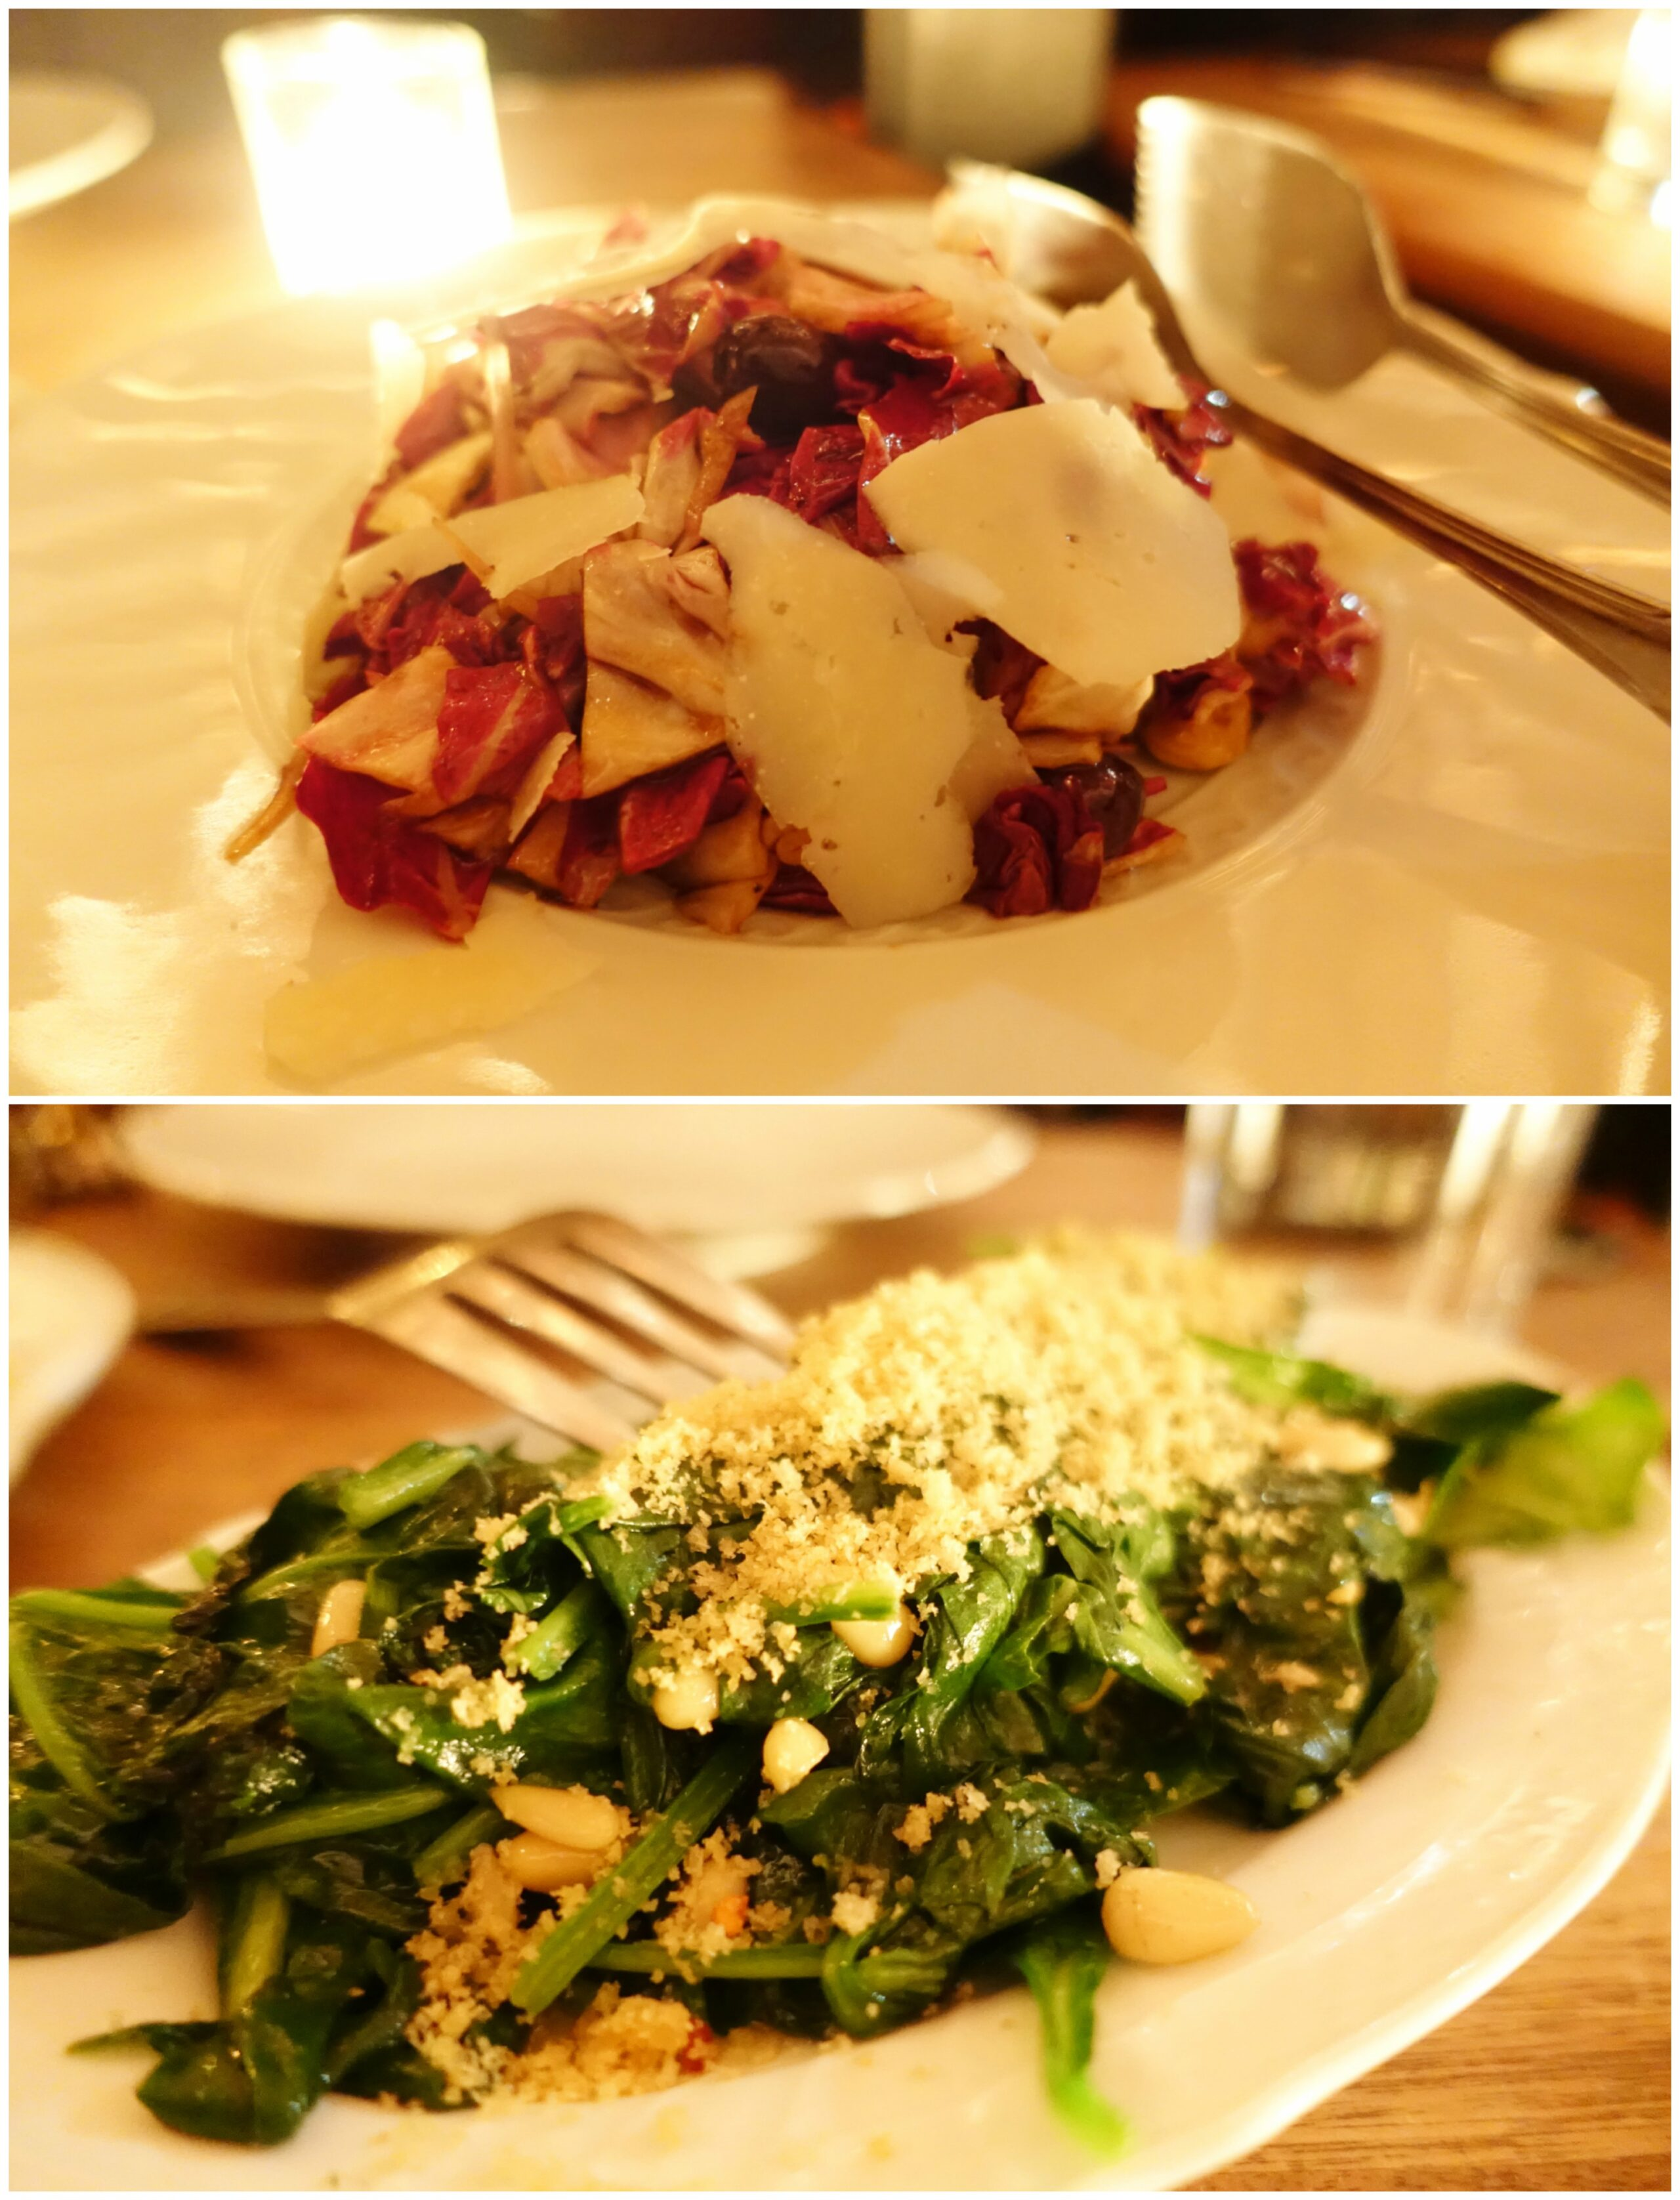 radicchio salad sauteed spinach the tasting kitchen venice los angeles california - Tasting Kitchen Venice